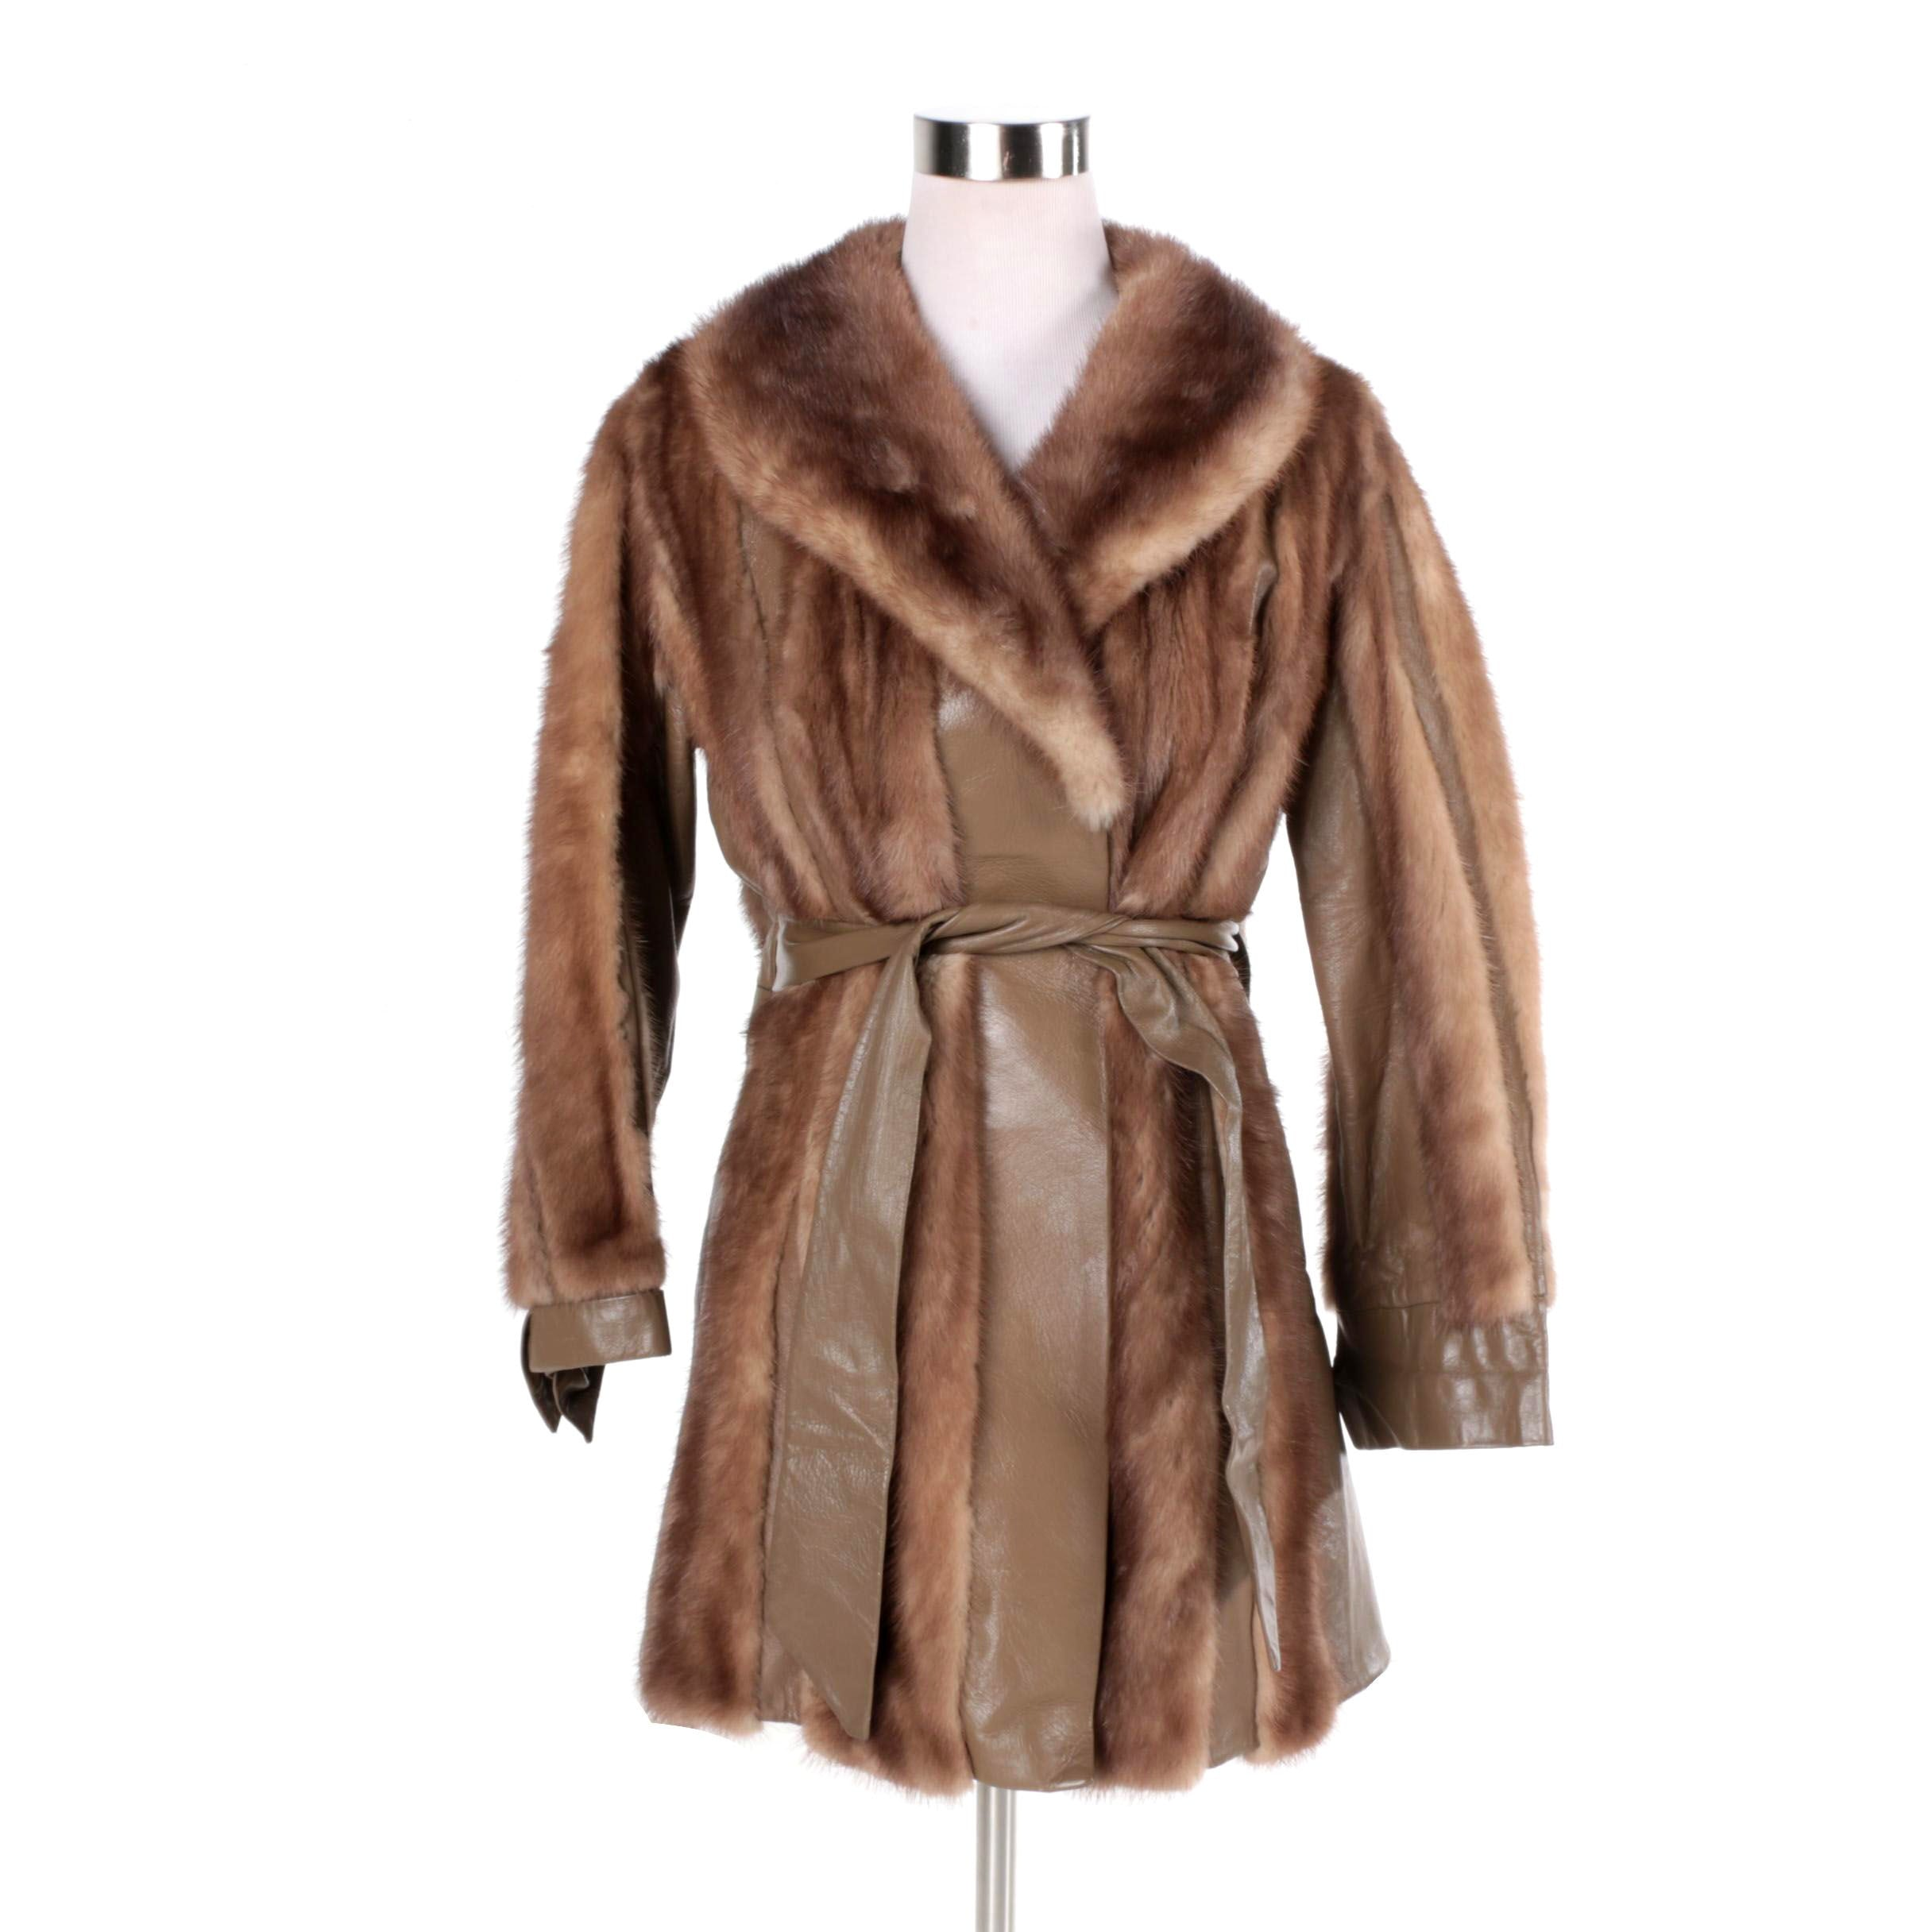 Women's Vintage Mink Fur and Leather Jacket